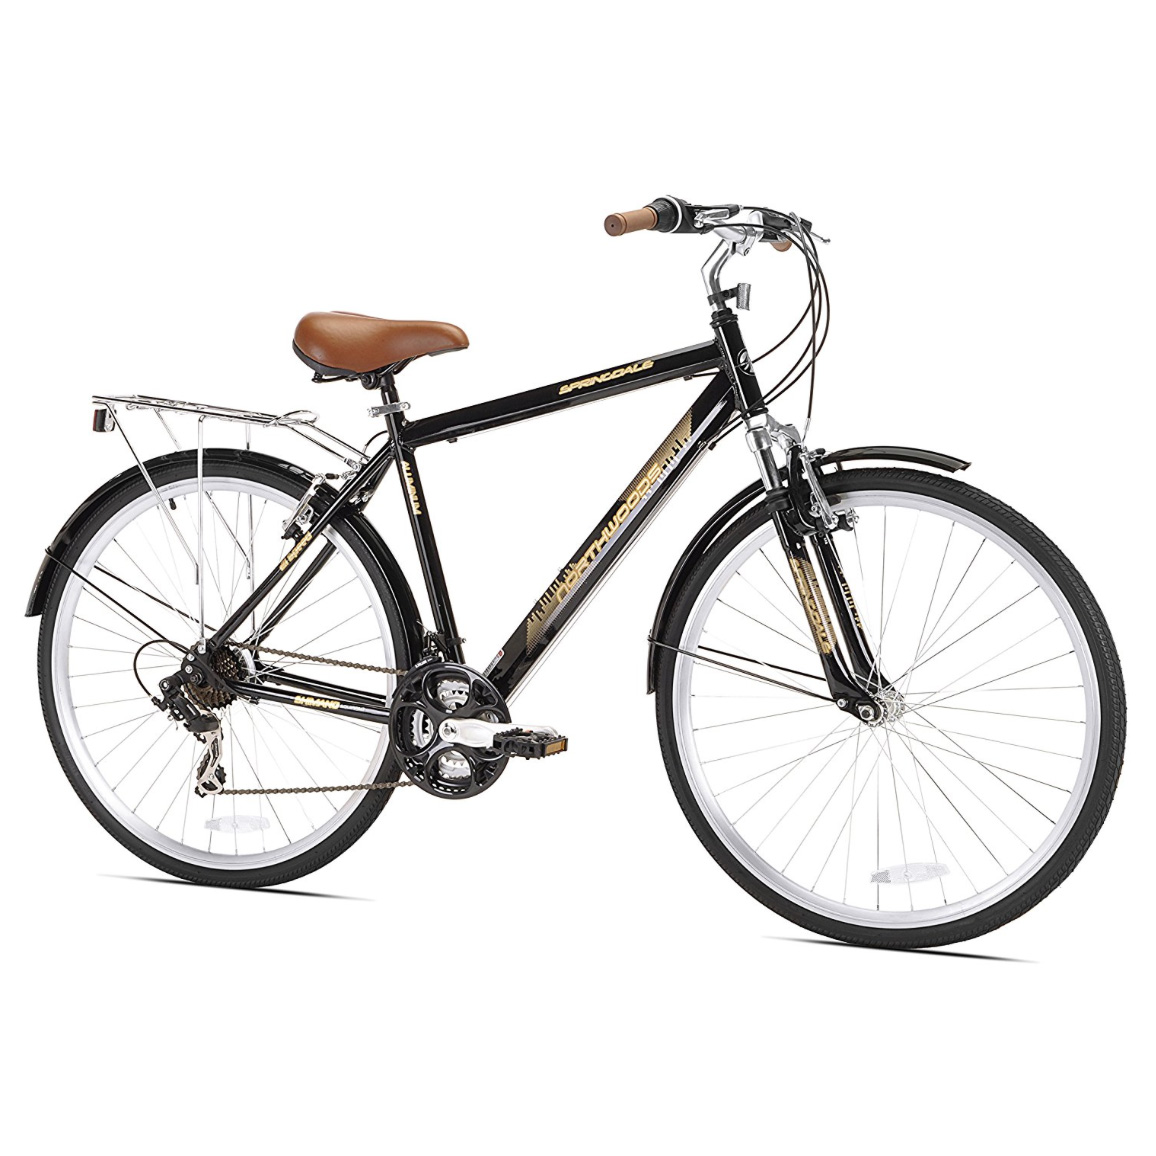 Northwoods - Springdale Men's 21-Speed Hybrid Bicycle, 700c